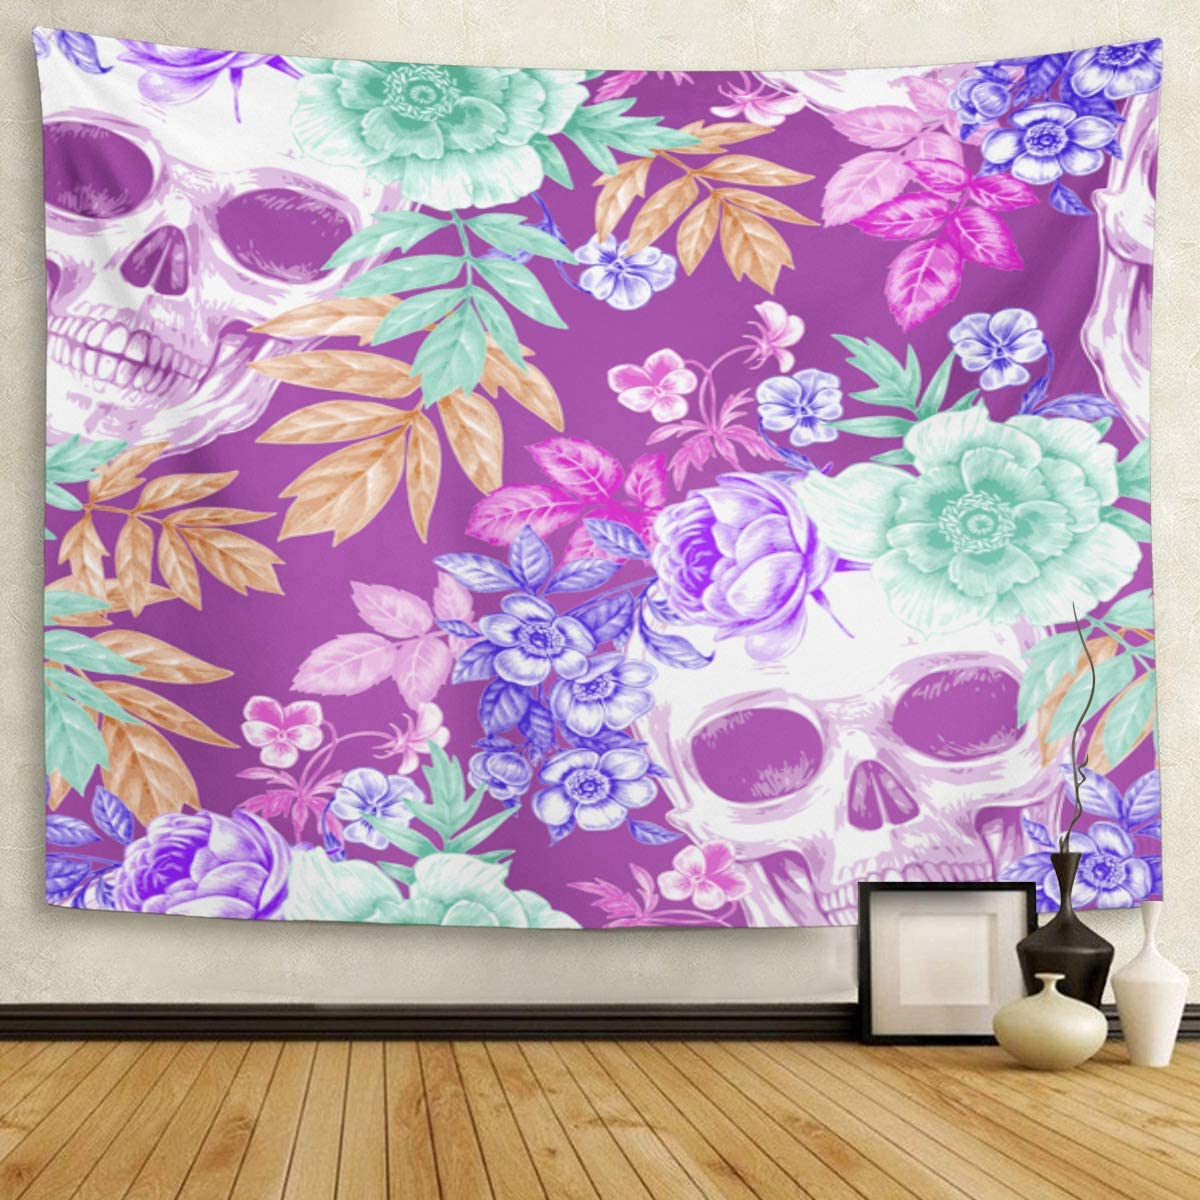 """Newest Emvency 60""""x80"""" Tapestry Mandala Hippie Wall Hangings Wreaths Of Garden Flowers And Skulls Roses Peonies For Fabrics Retro Vintage Intended For Blended Fabric Irises Tapestries (View 18 of 20)"""